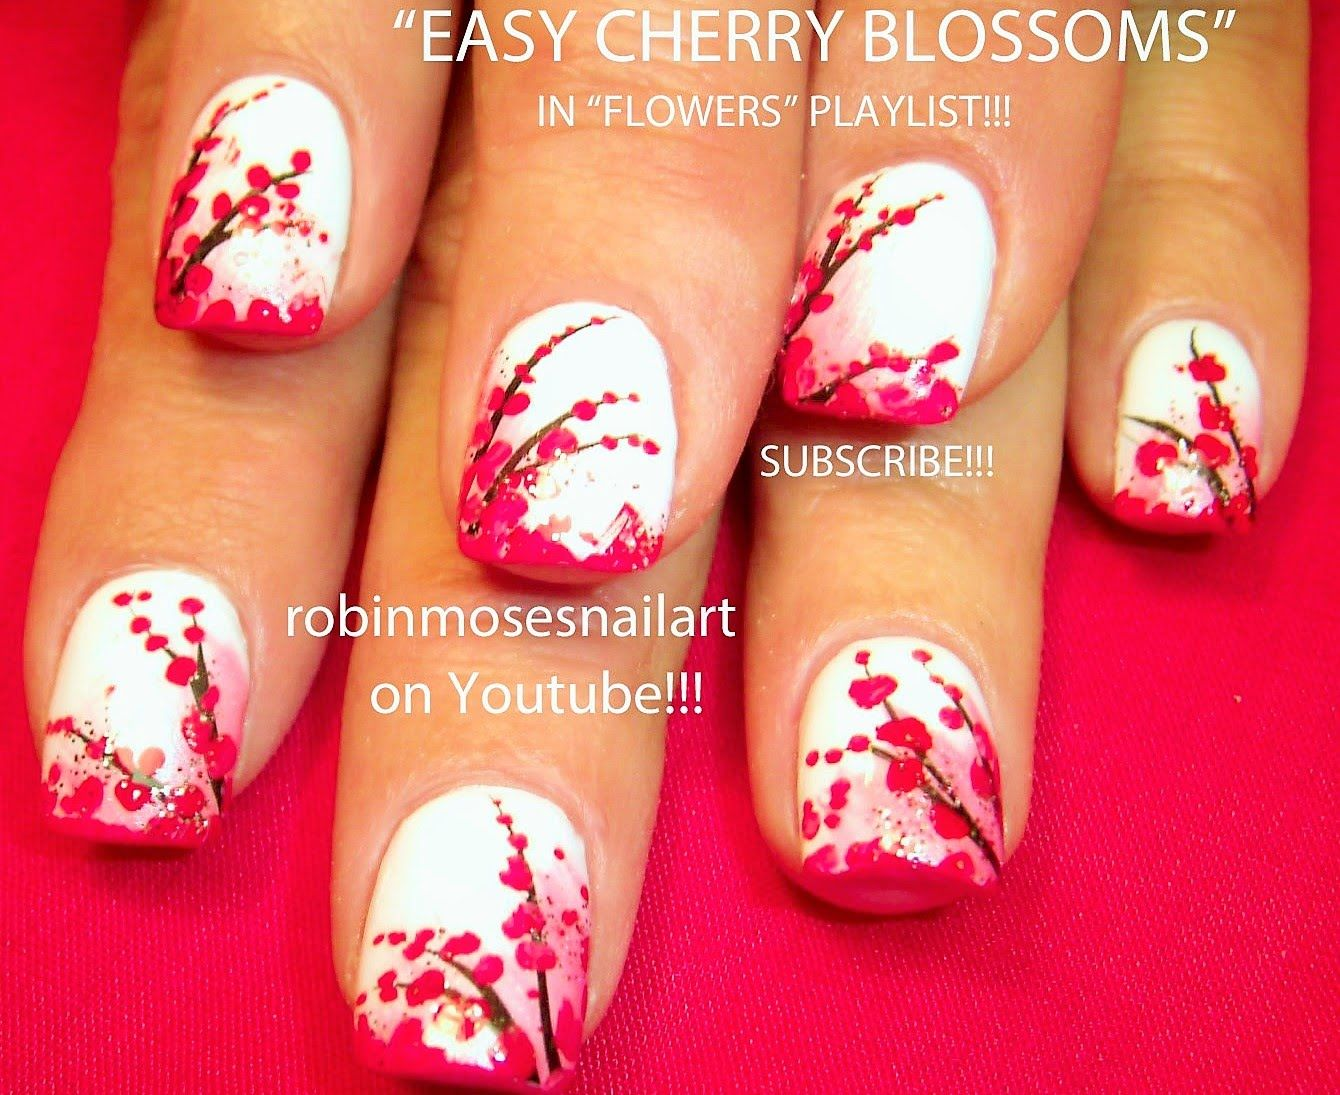 Simple Nail Art simple nail art flowers : Nail Art Tutorial | Easy Cherry Blossom Nail Art Design for ...